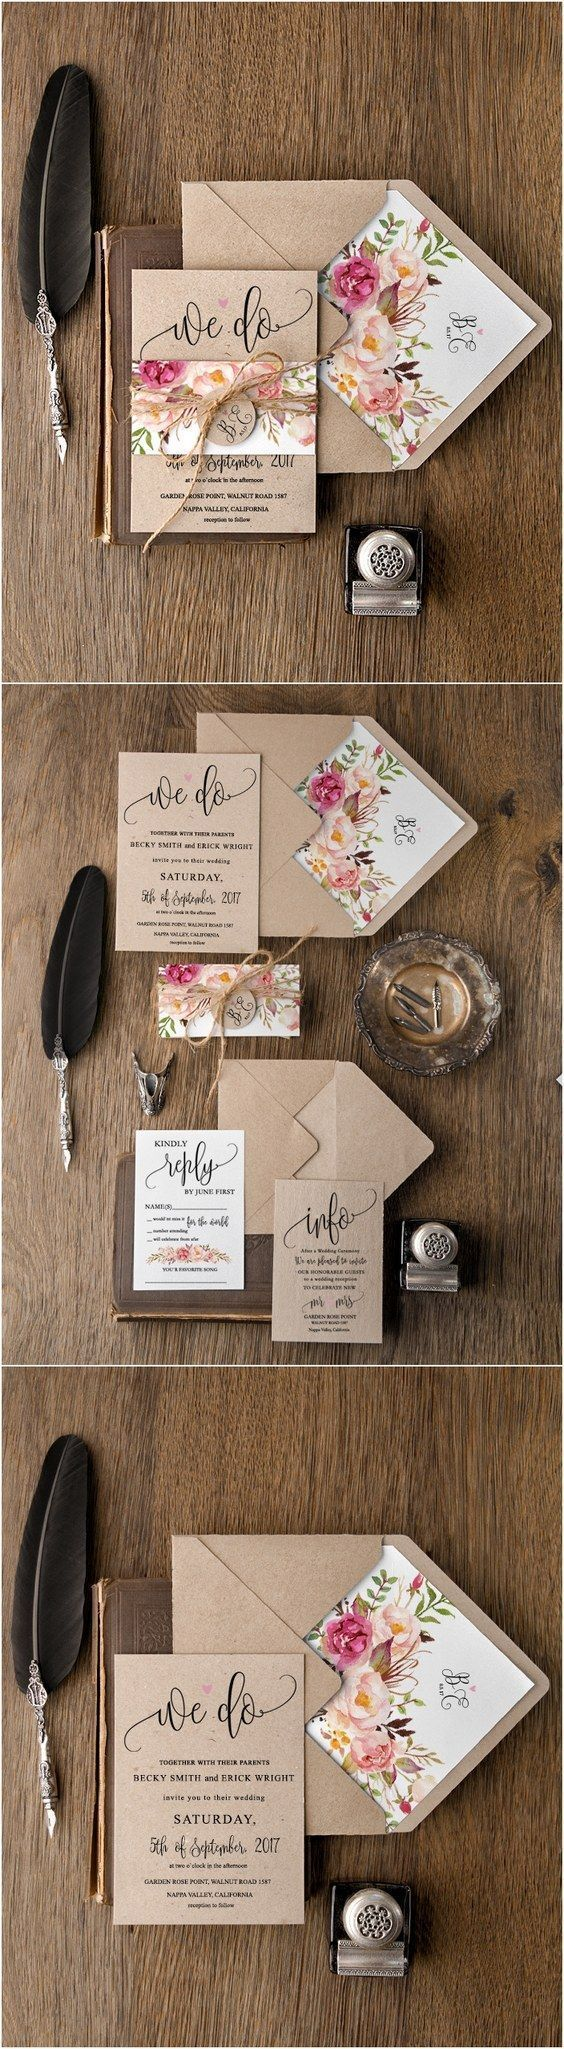 Wedding vehicle decorations november 2018  best Wedding Invitations images on Pinterest  Copper wedding